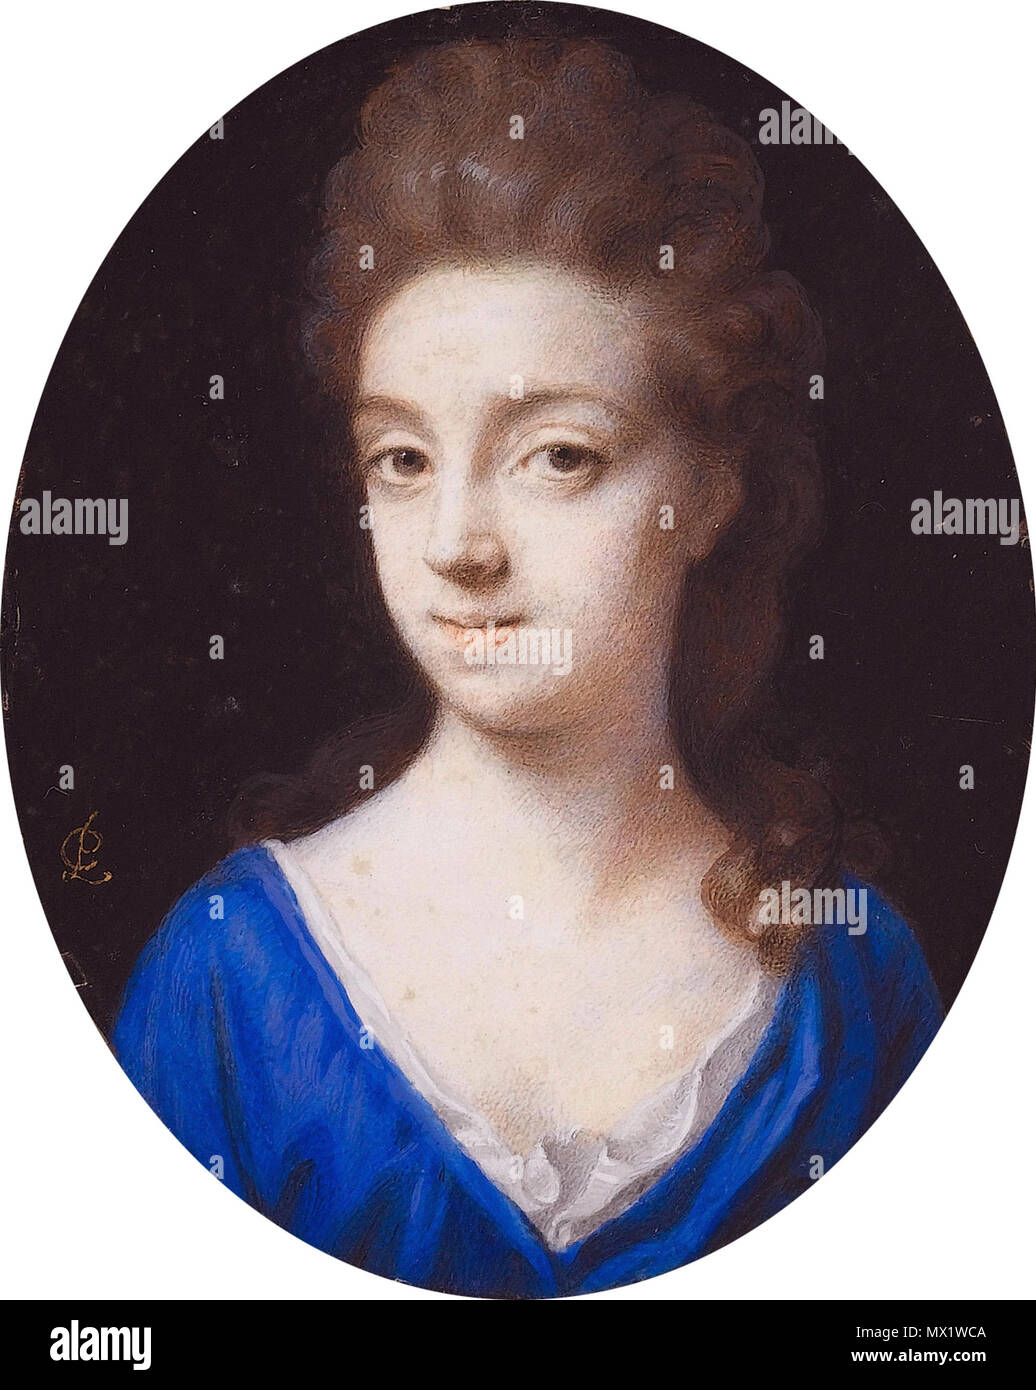 . English: Carey, daughter of Sir Alexander Fraser Bt., wife of Charles Mordaunt, 3rd Earl of Peterborough on vellum oval, 8,7 cm high signed l.c.: PC  . second half of 17th century. Peter Cross (c 1650-1724) 113 Carey, Countess of Peterborough, by Peter Cross (c 1650-1724) - Stock Image